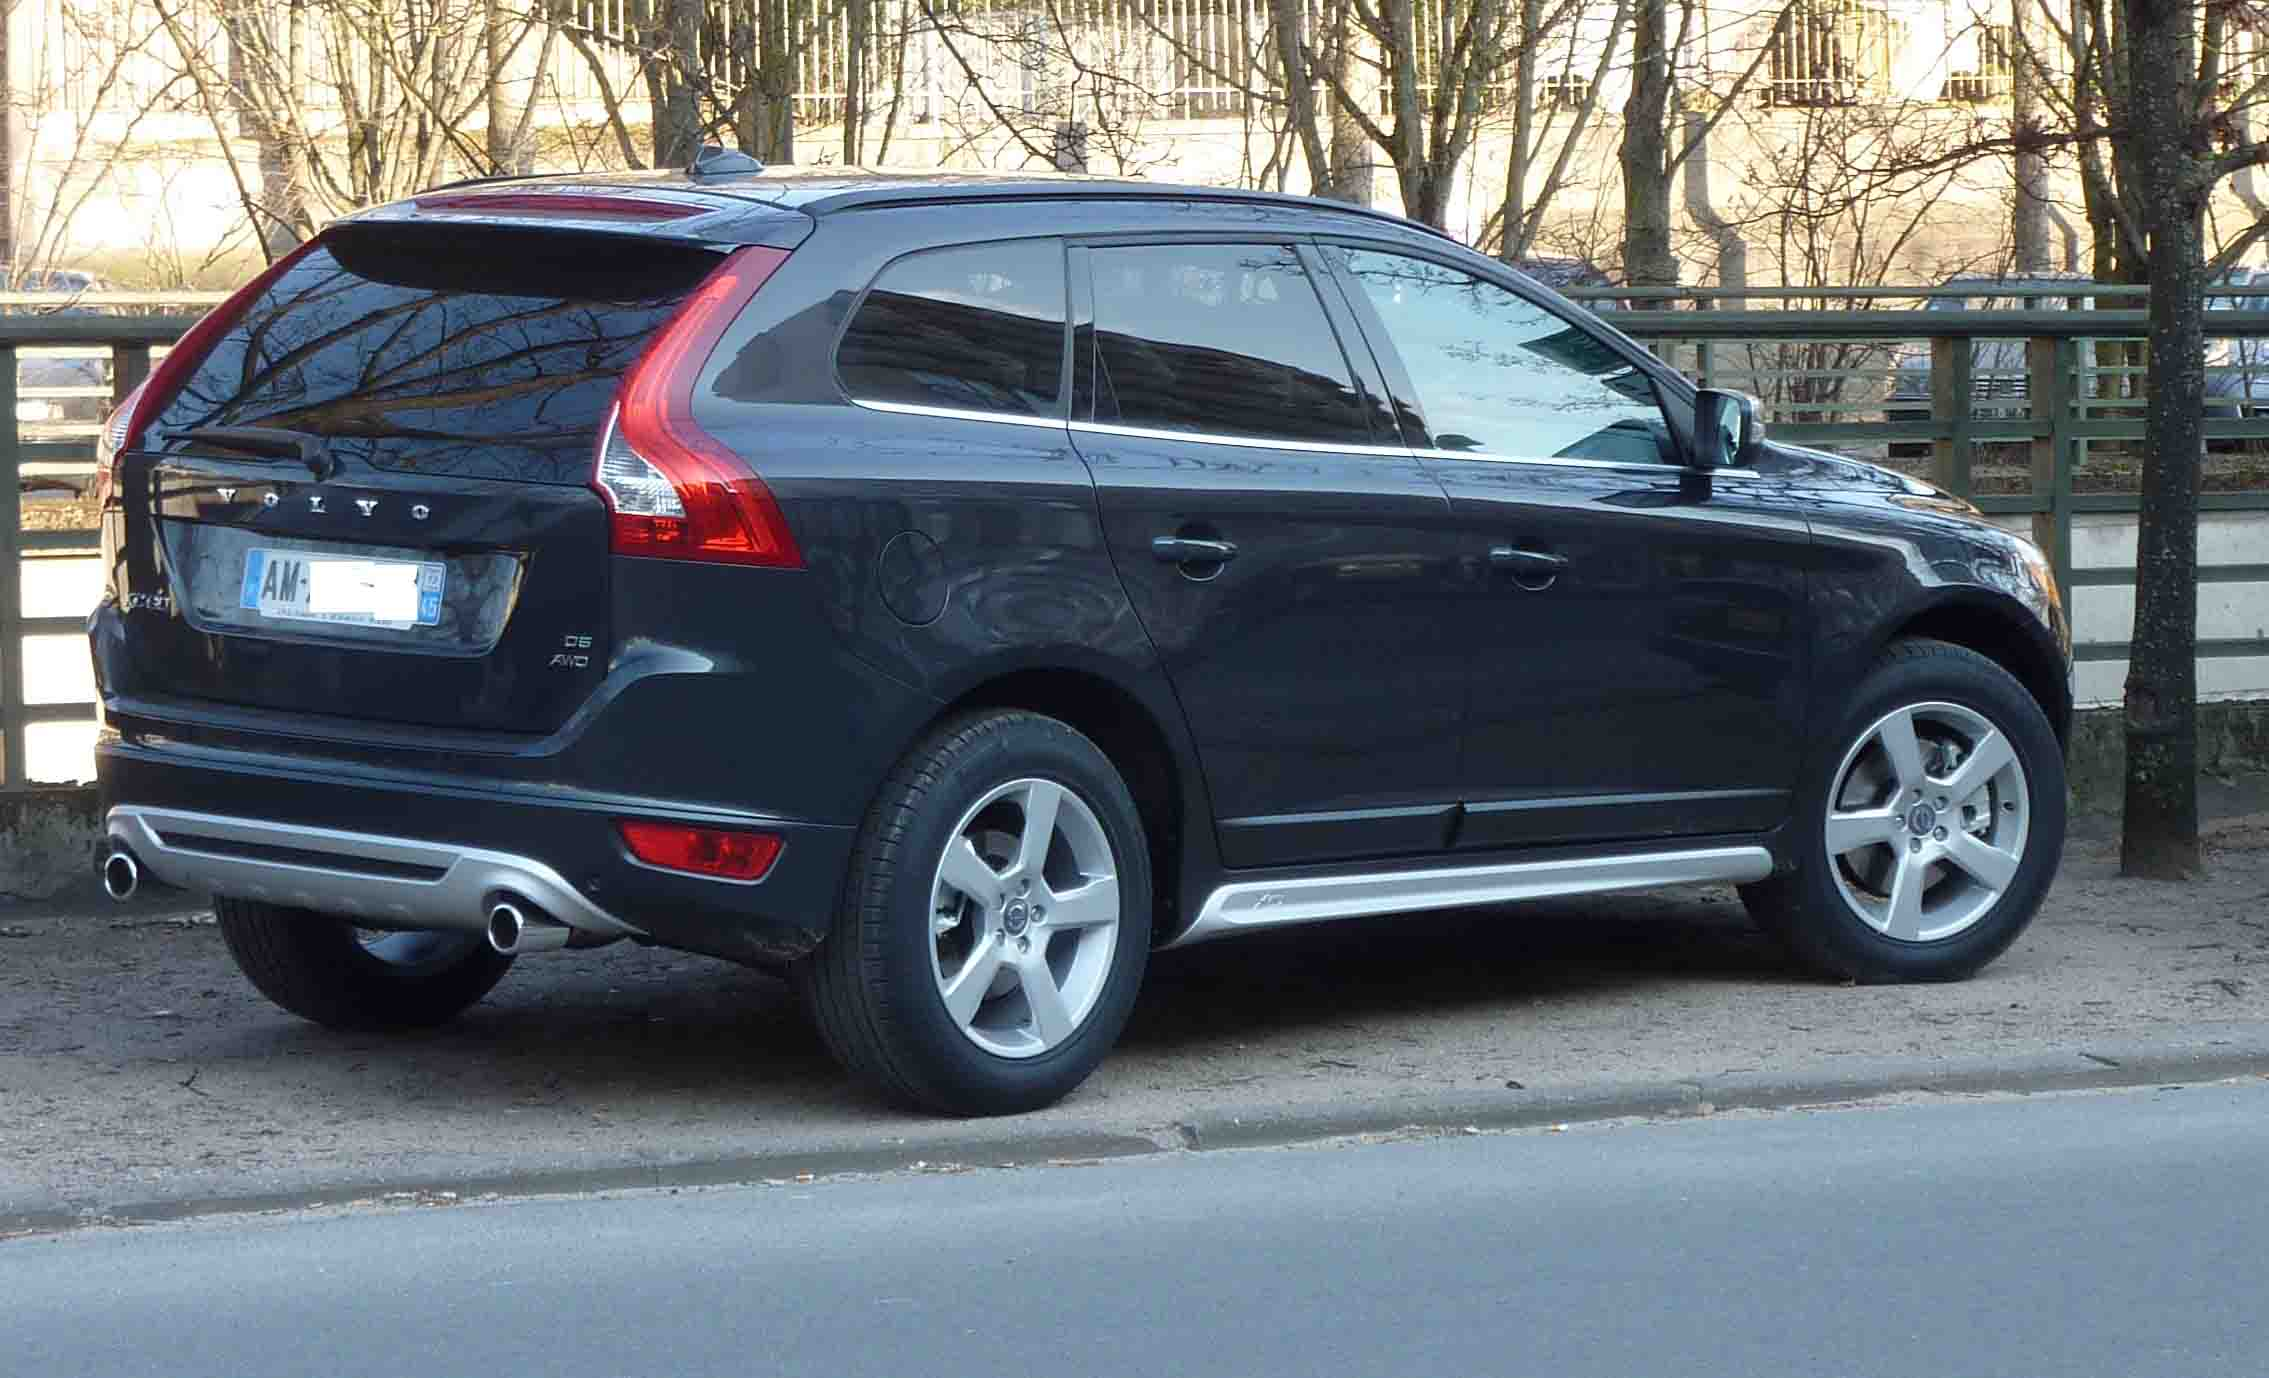 du volvo xc60 le topic officiel page 266 xc60 volvo forum marques. Black Bedroom Furniture Sets. Home Design Ideas